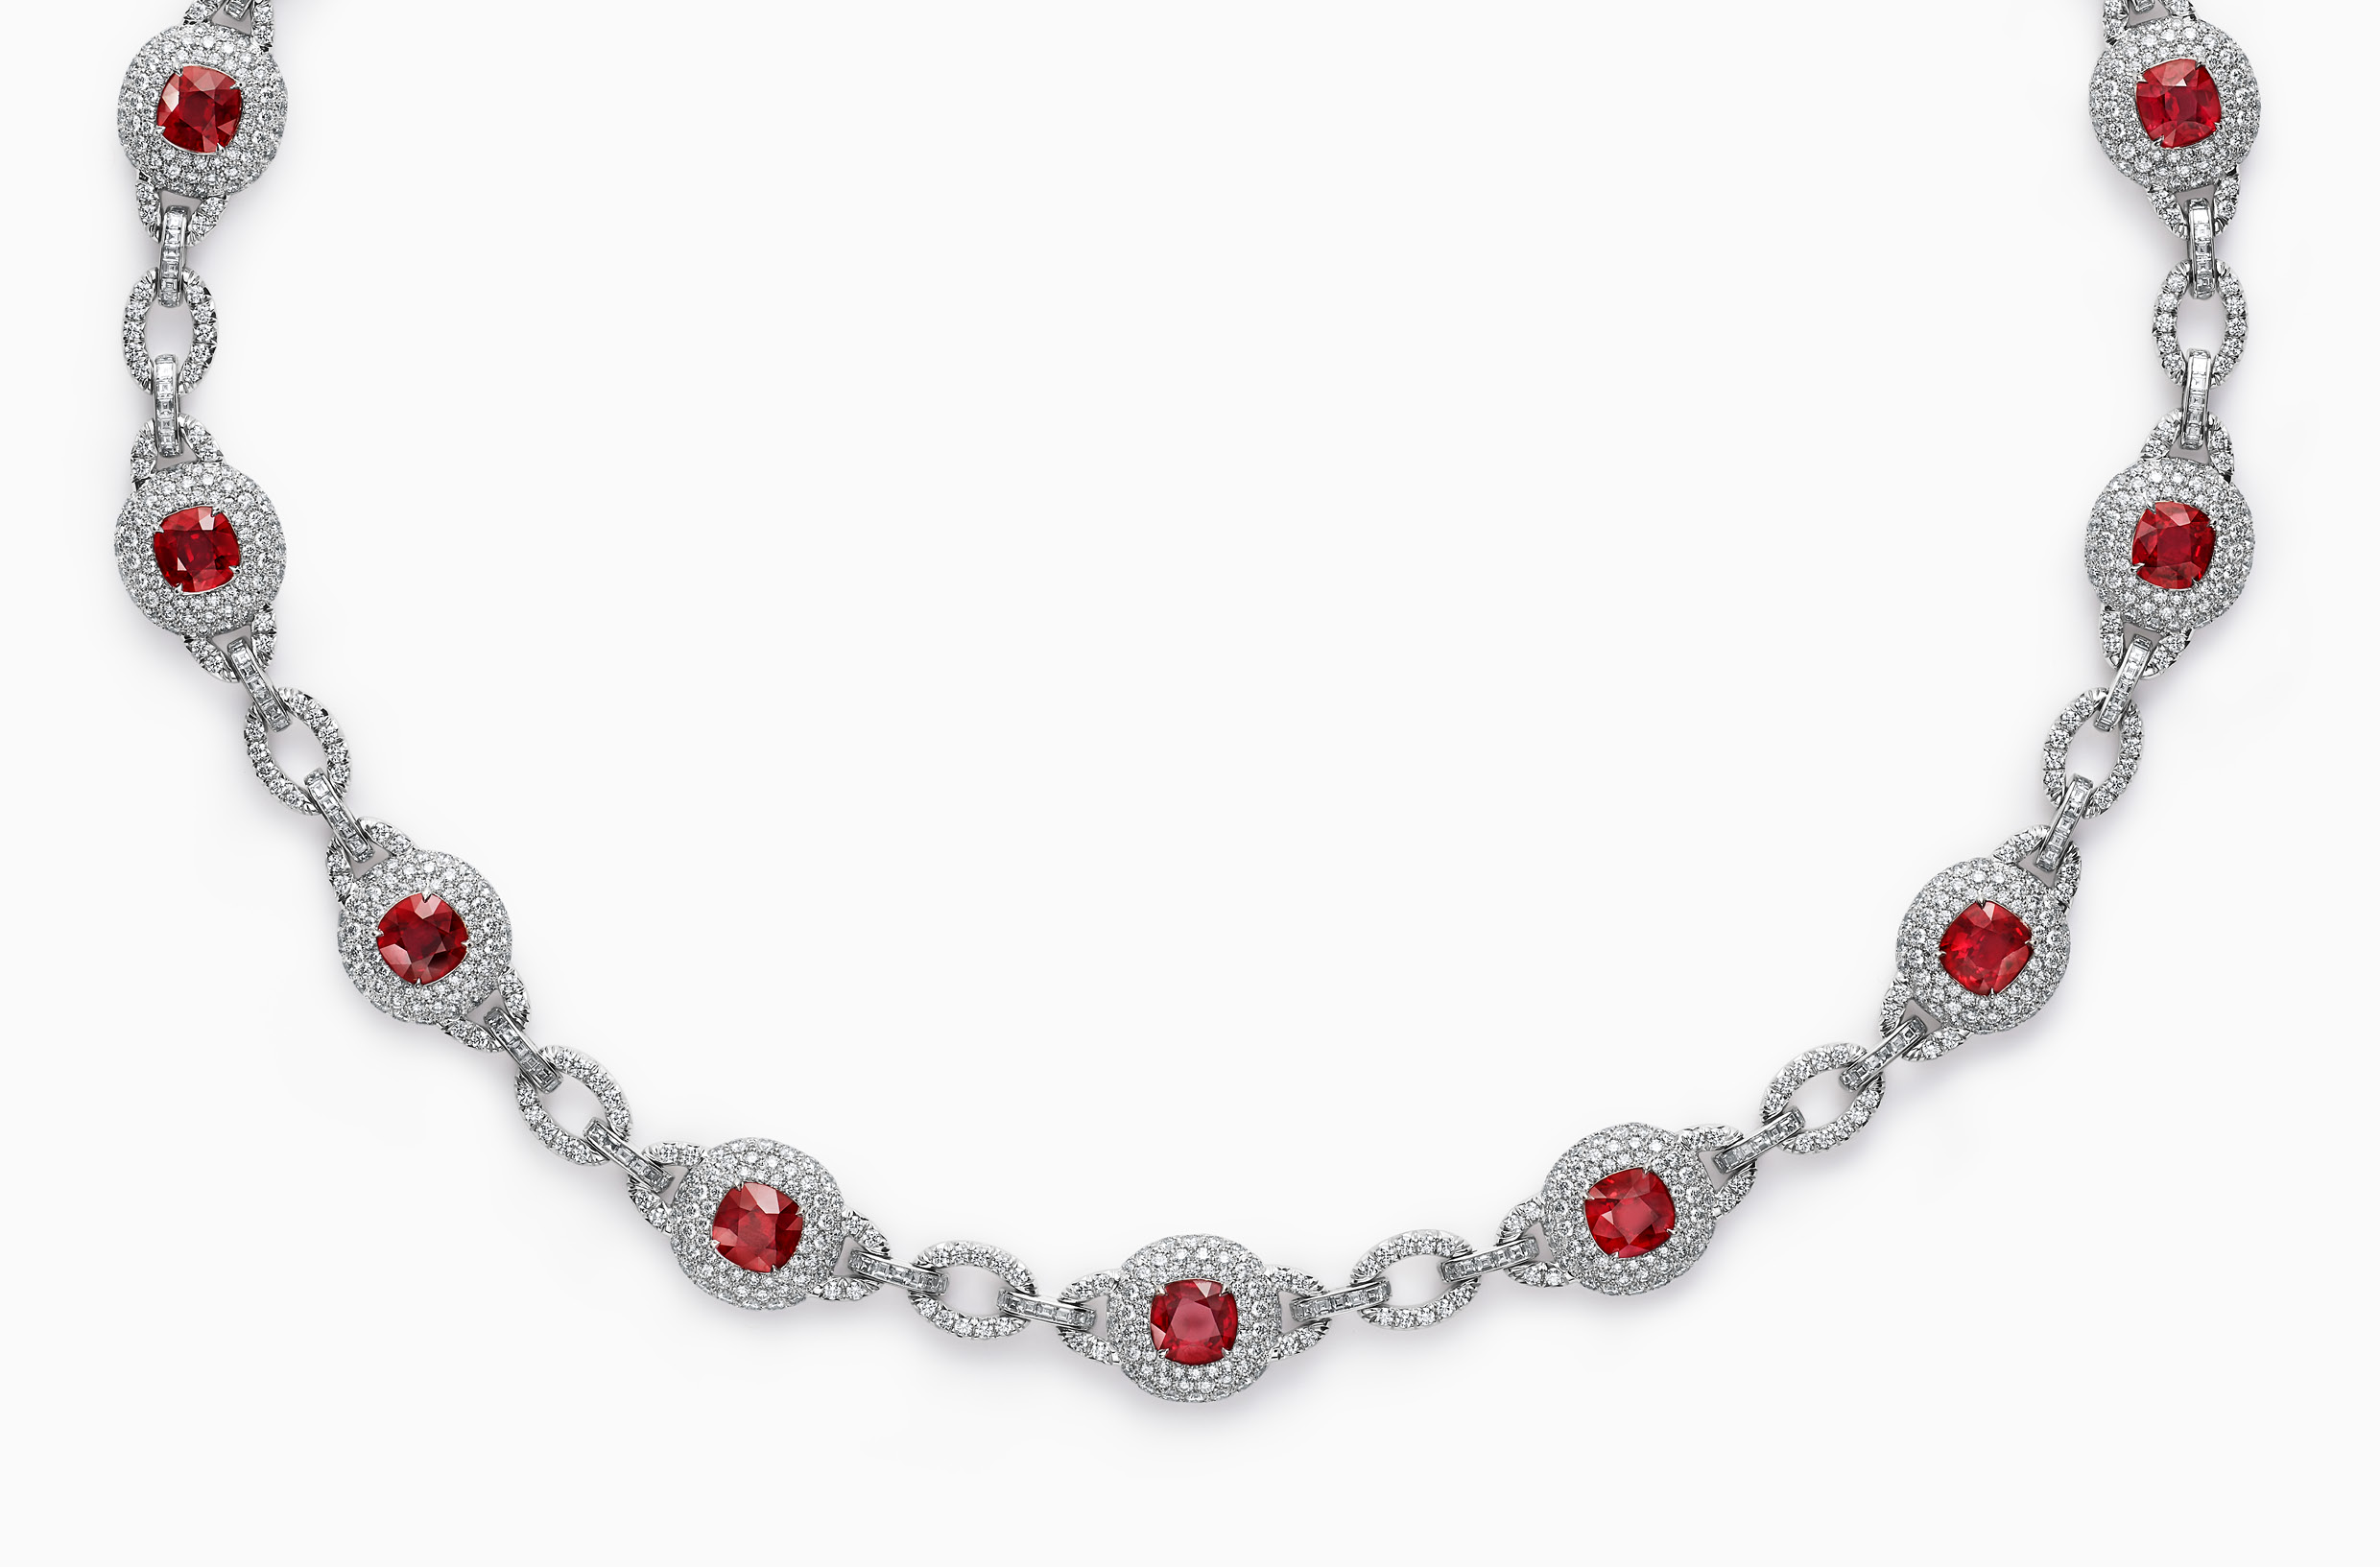 Tiffany & Co. Jean Schlumberger High Jewelry Necklace